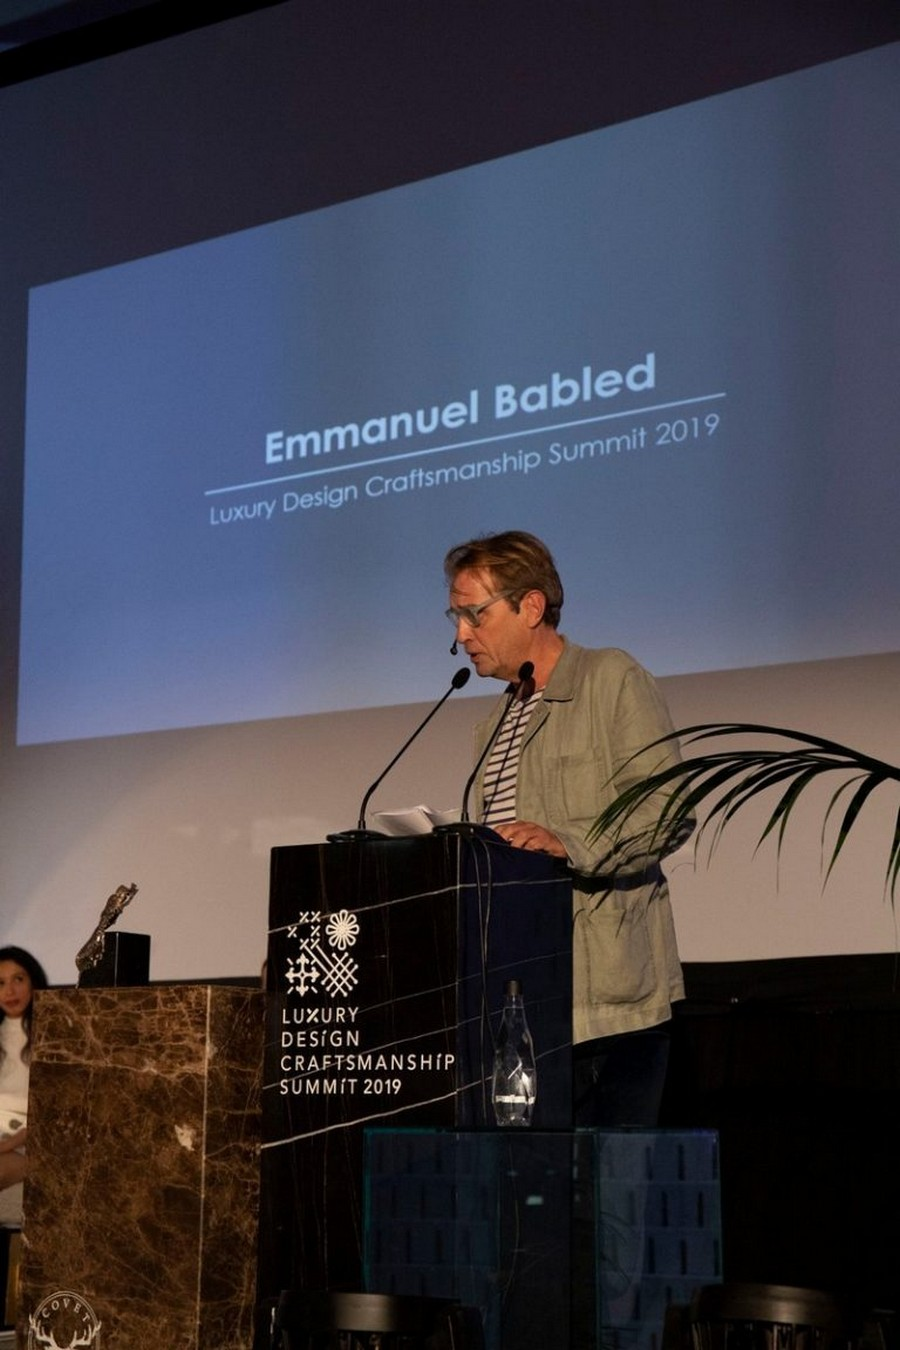 Meet Emmanuel Babled a French Designer inspired by Italian arts emmanuel babled Meet Emmanuel Babled: a French Designer inspired by Italian arts Meet Emmanuel Babled a French Designer inspired by Italian arts 1